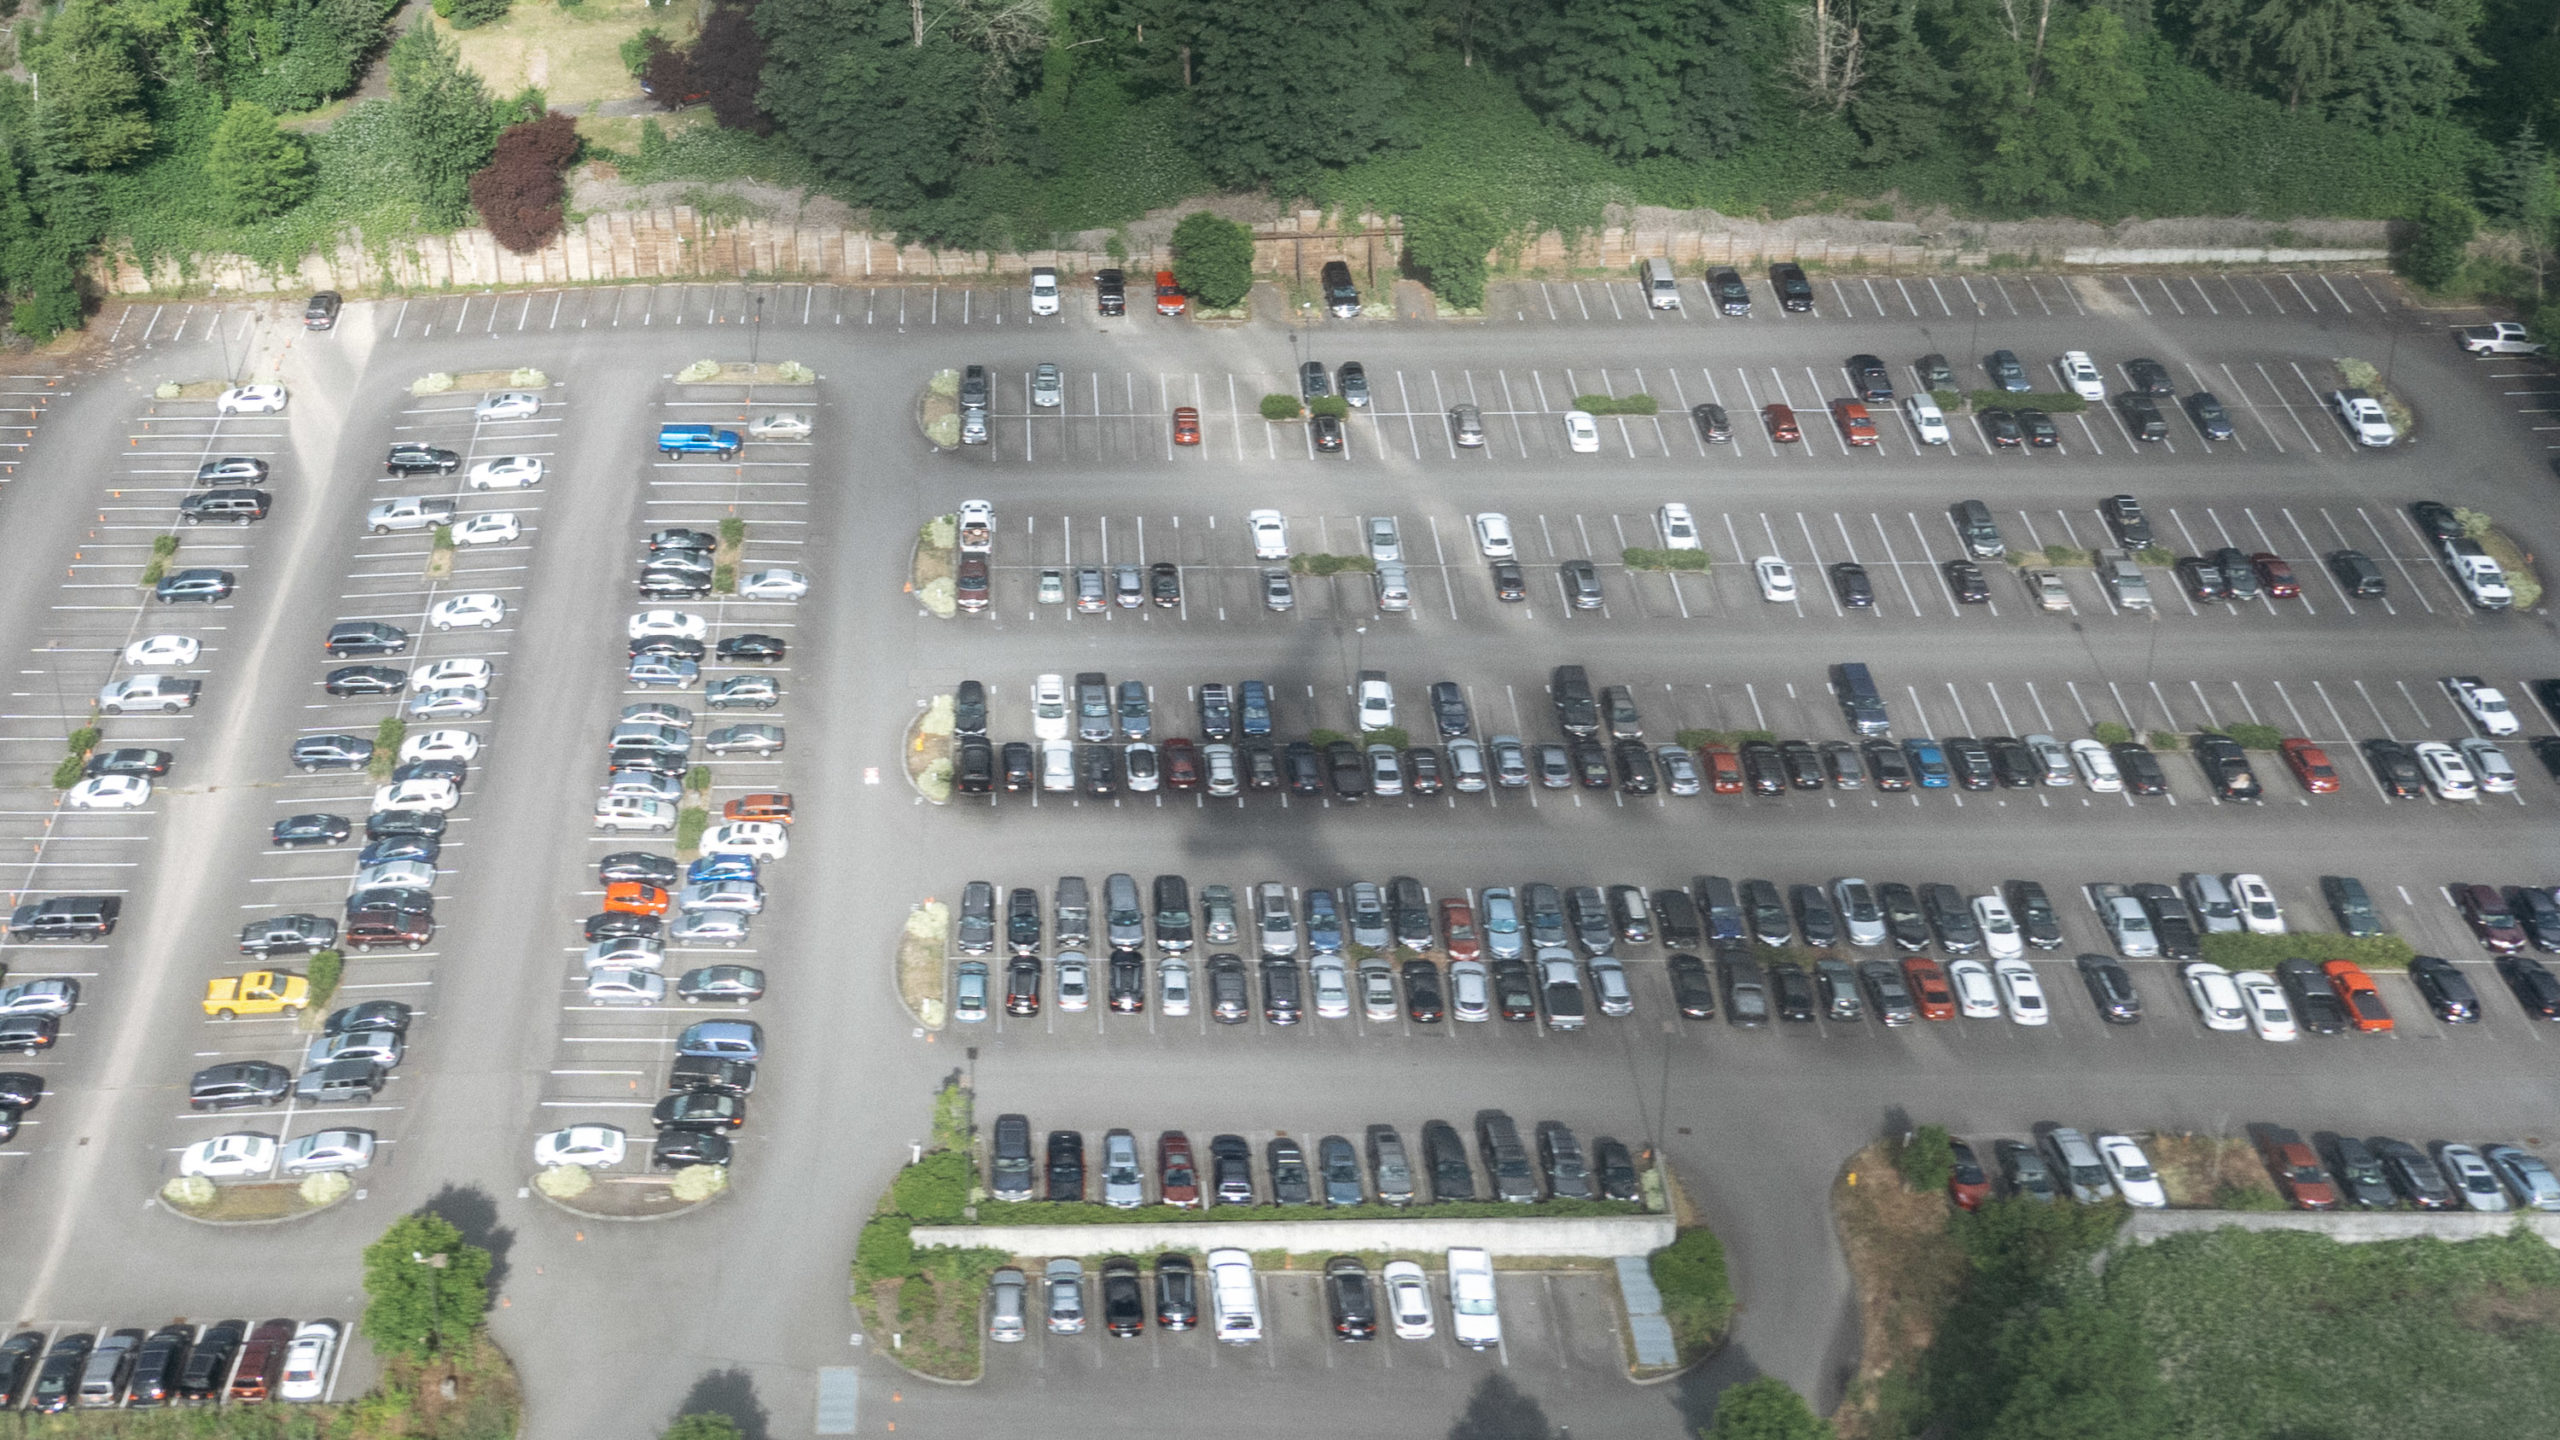 Shadow of a plane on parking lot